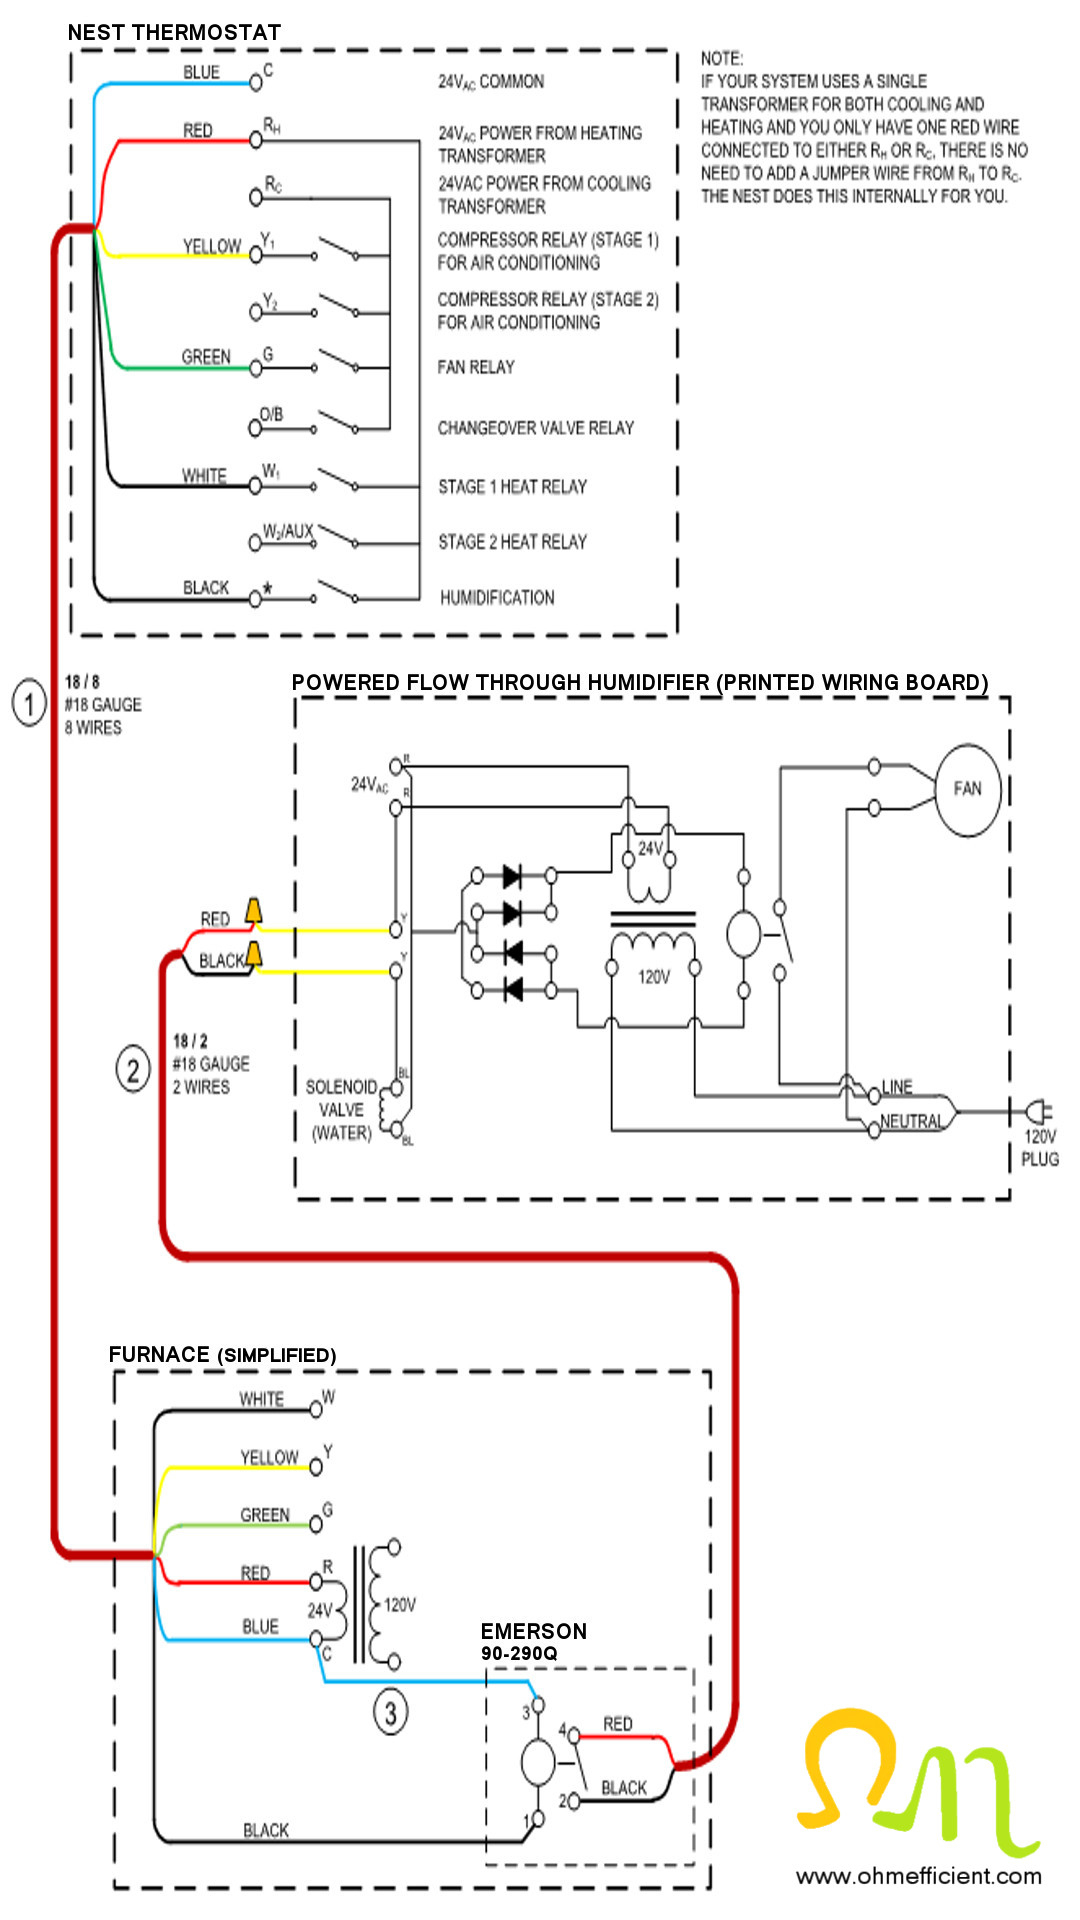 How To Connect & Setup A Nest Thermostat To Function As A Humidistat - Nest Thermostat Bypass Humidifier Wiring Diagram